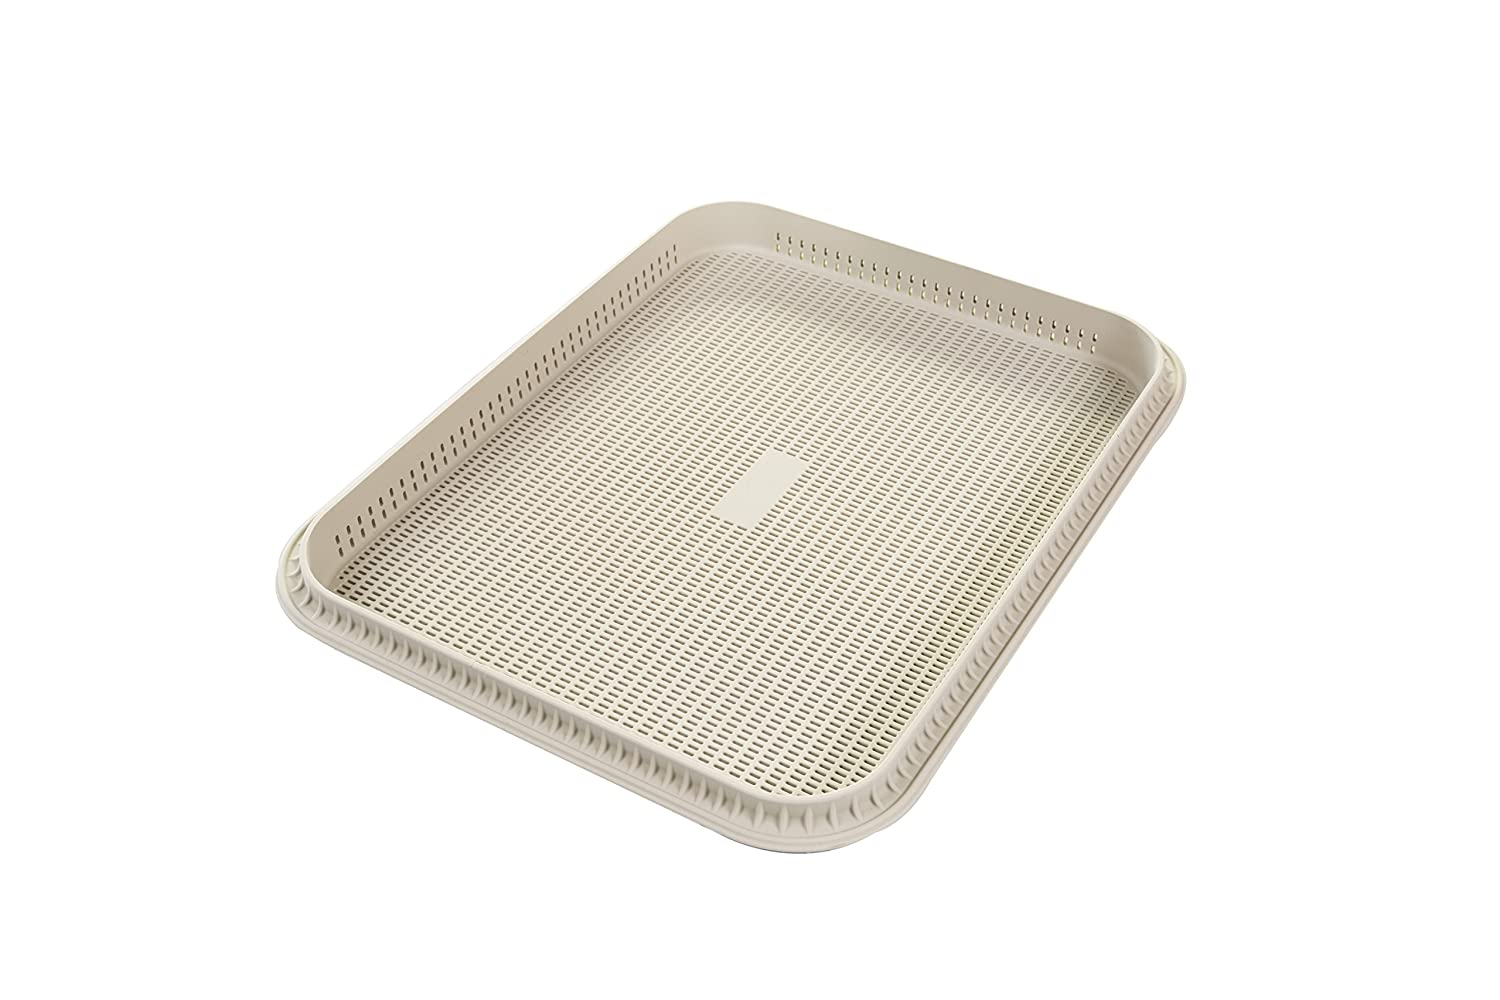 Silikomart Focaccia Bread Silicone Mold, Flexible Rectangular Pan with Perforated Design Circulates Heat and Easily Unmolds, Oven, Microwave, Dishwasher and Freezer Safe, Made in Italy